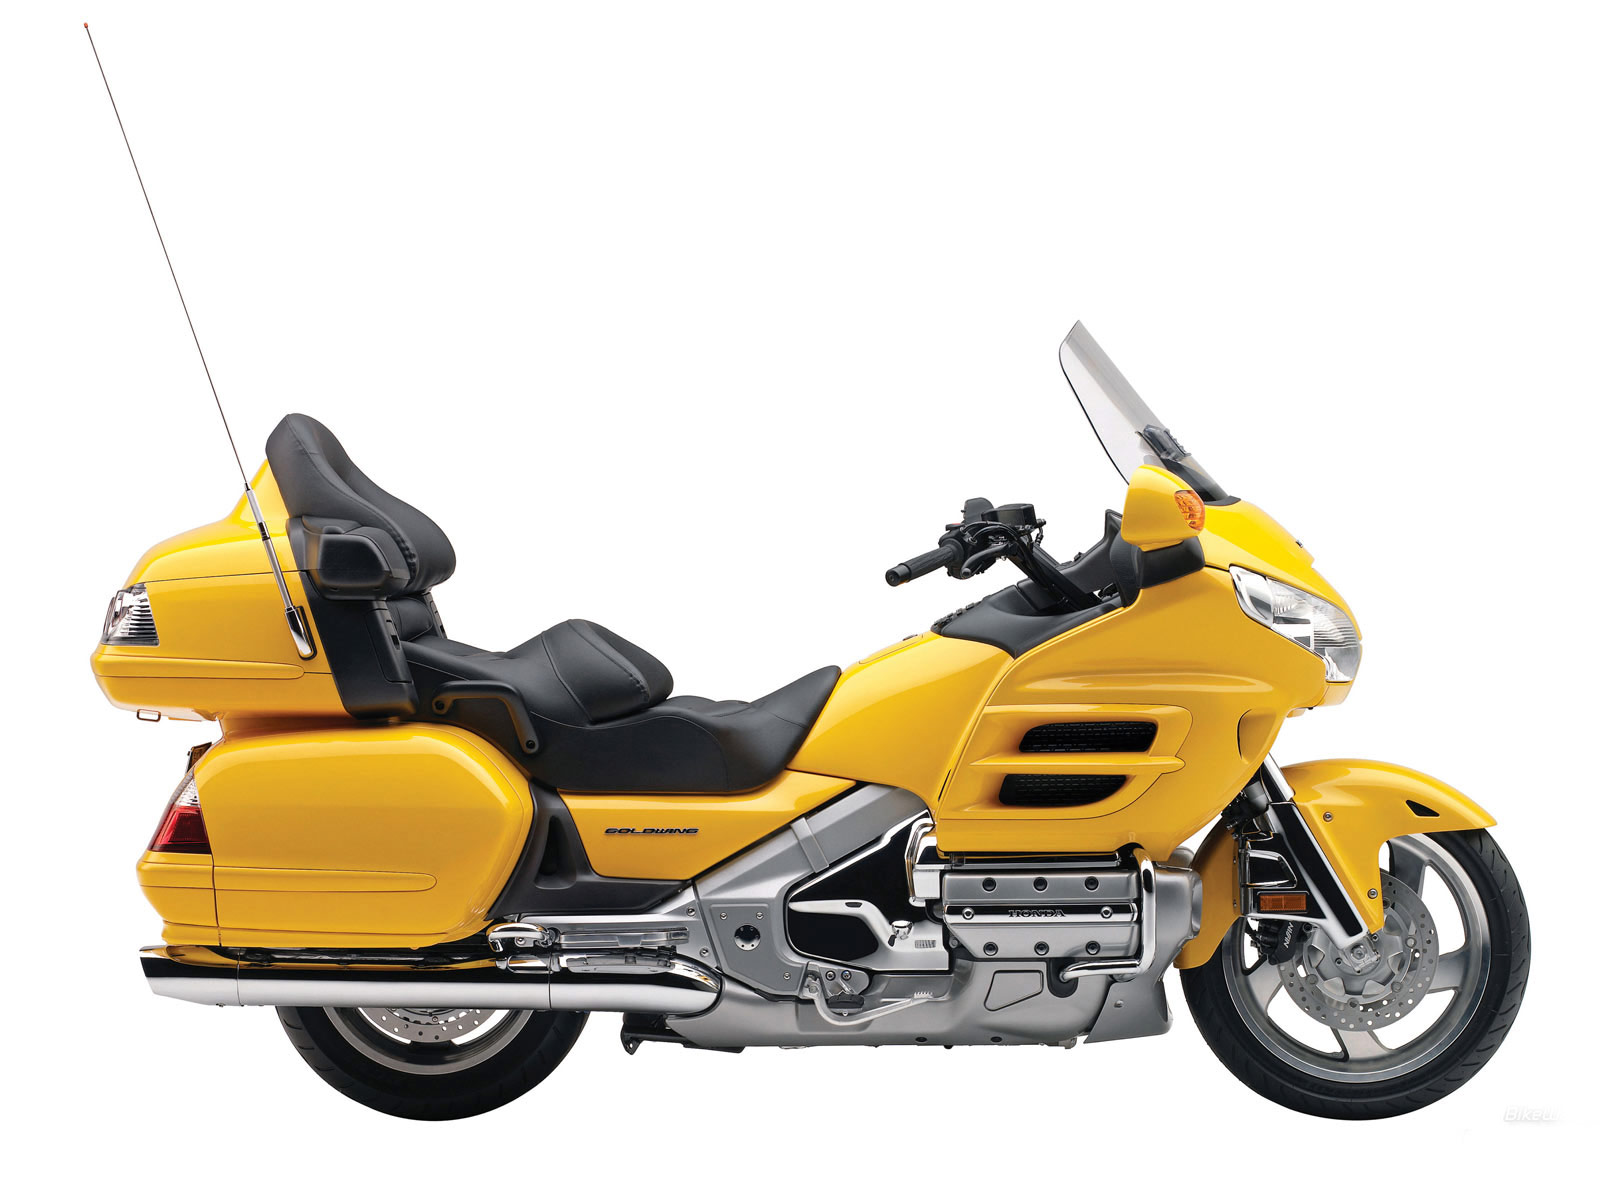 Watch as well Showthread besides 3826961 2017 Actual Corvette Color Chips Rick Conti Coughlin also 2012 Harley Davidson Road Glide Custom 110241 likewise Ppg Harley Davidson Paint Colors jzSYLYC5jVF5IkUfJoK42 BstD HR59MBIDOrGiiTUI. on harley davidson paint colors 2009